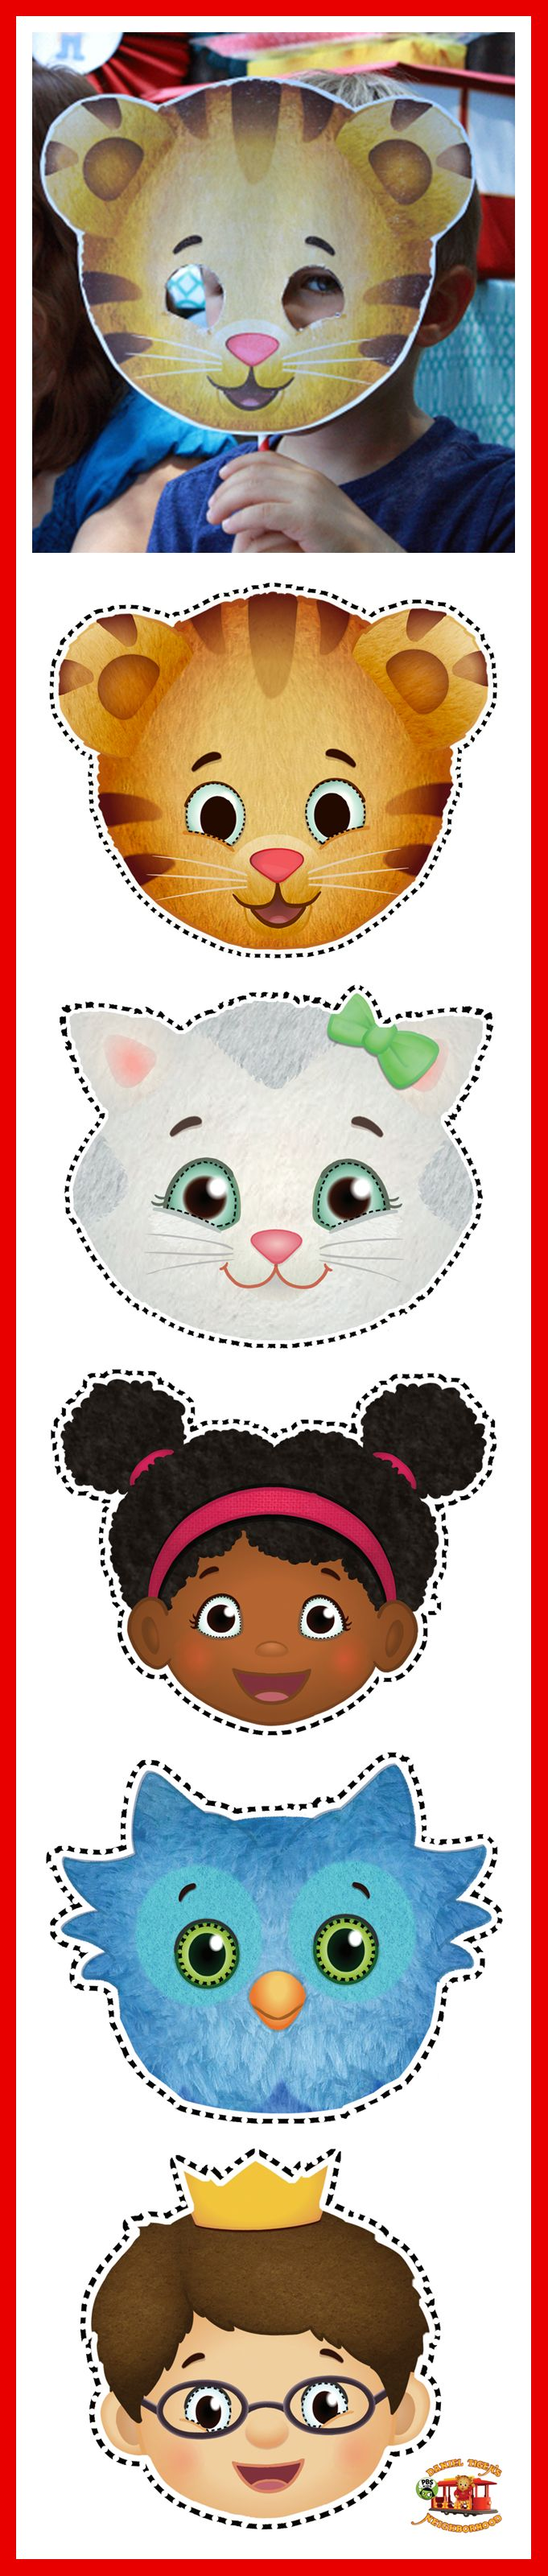 Daniel Tiger's Neighborhood face cut outs.   Daniel Tiger's Neighborhood Live! coming to Columbus, Ohio